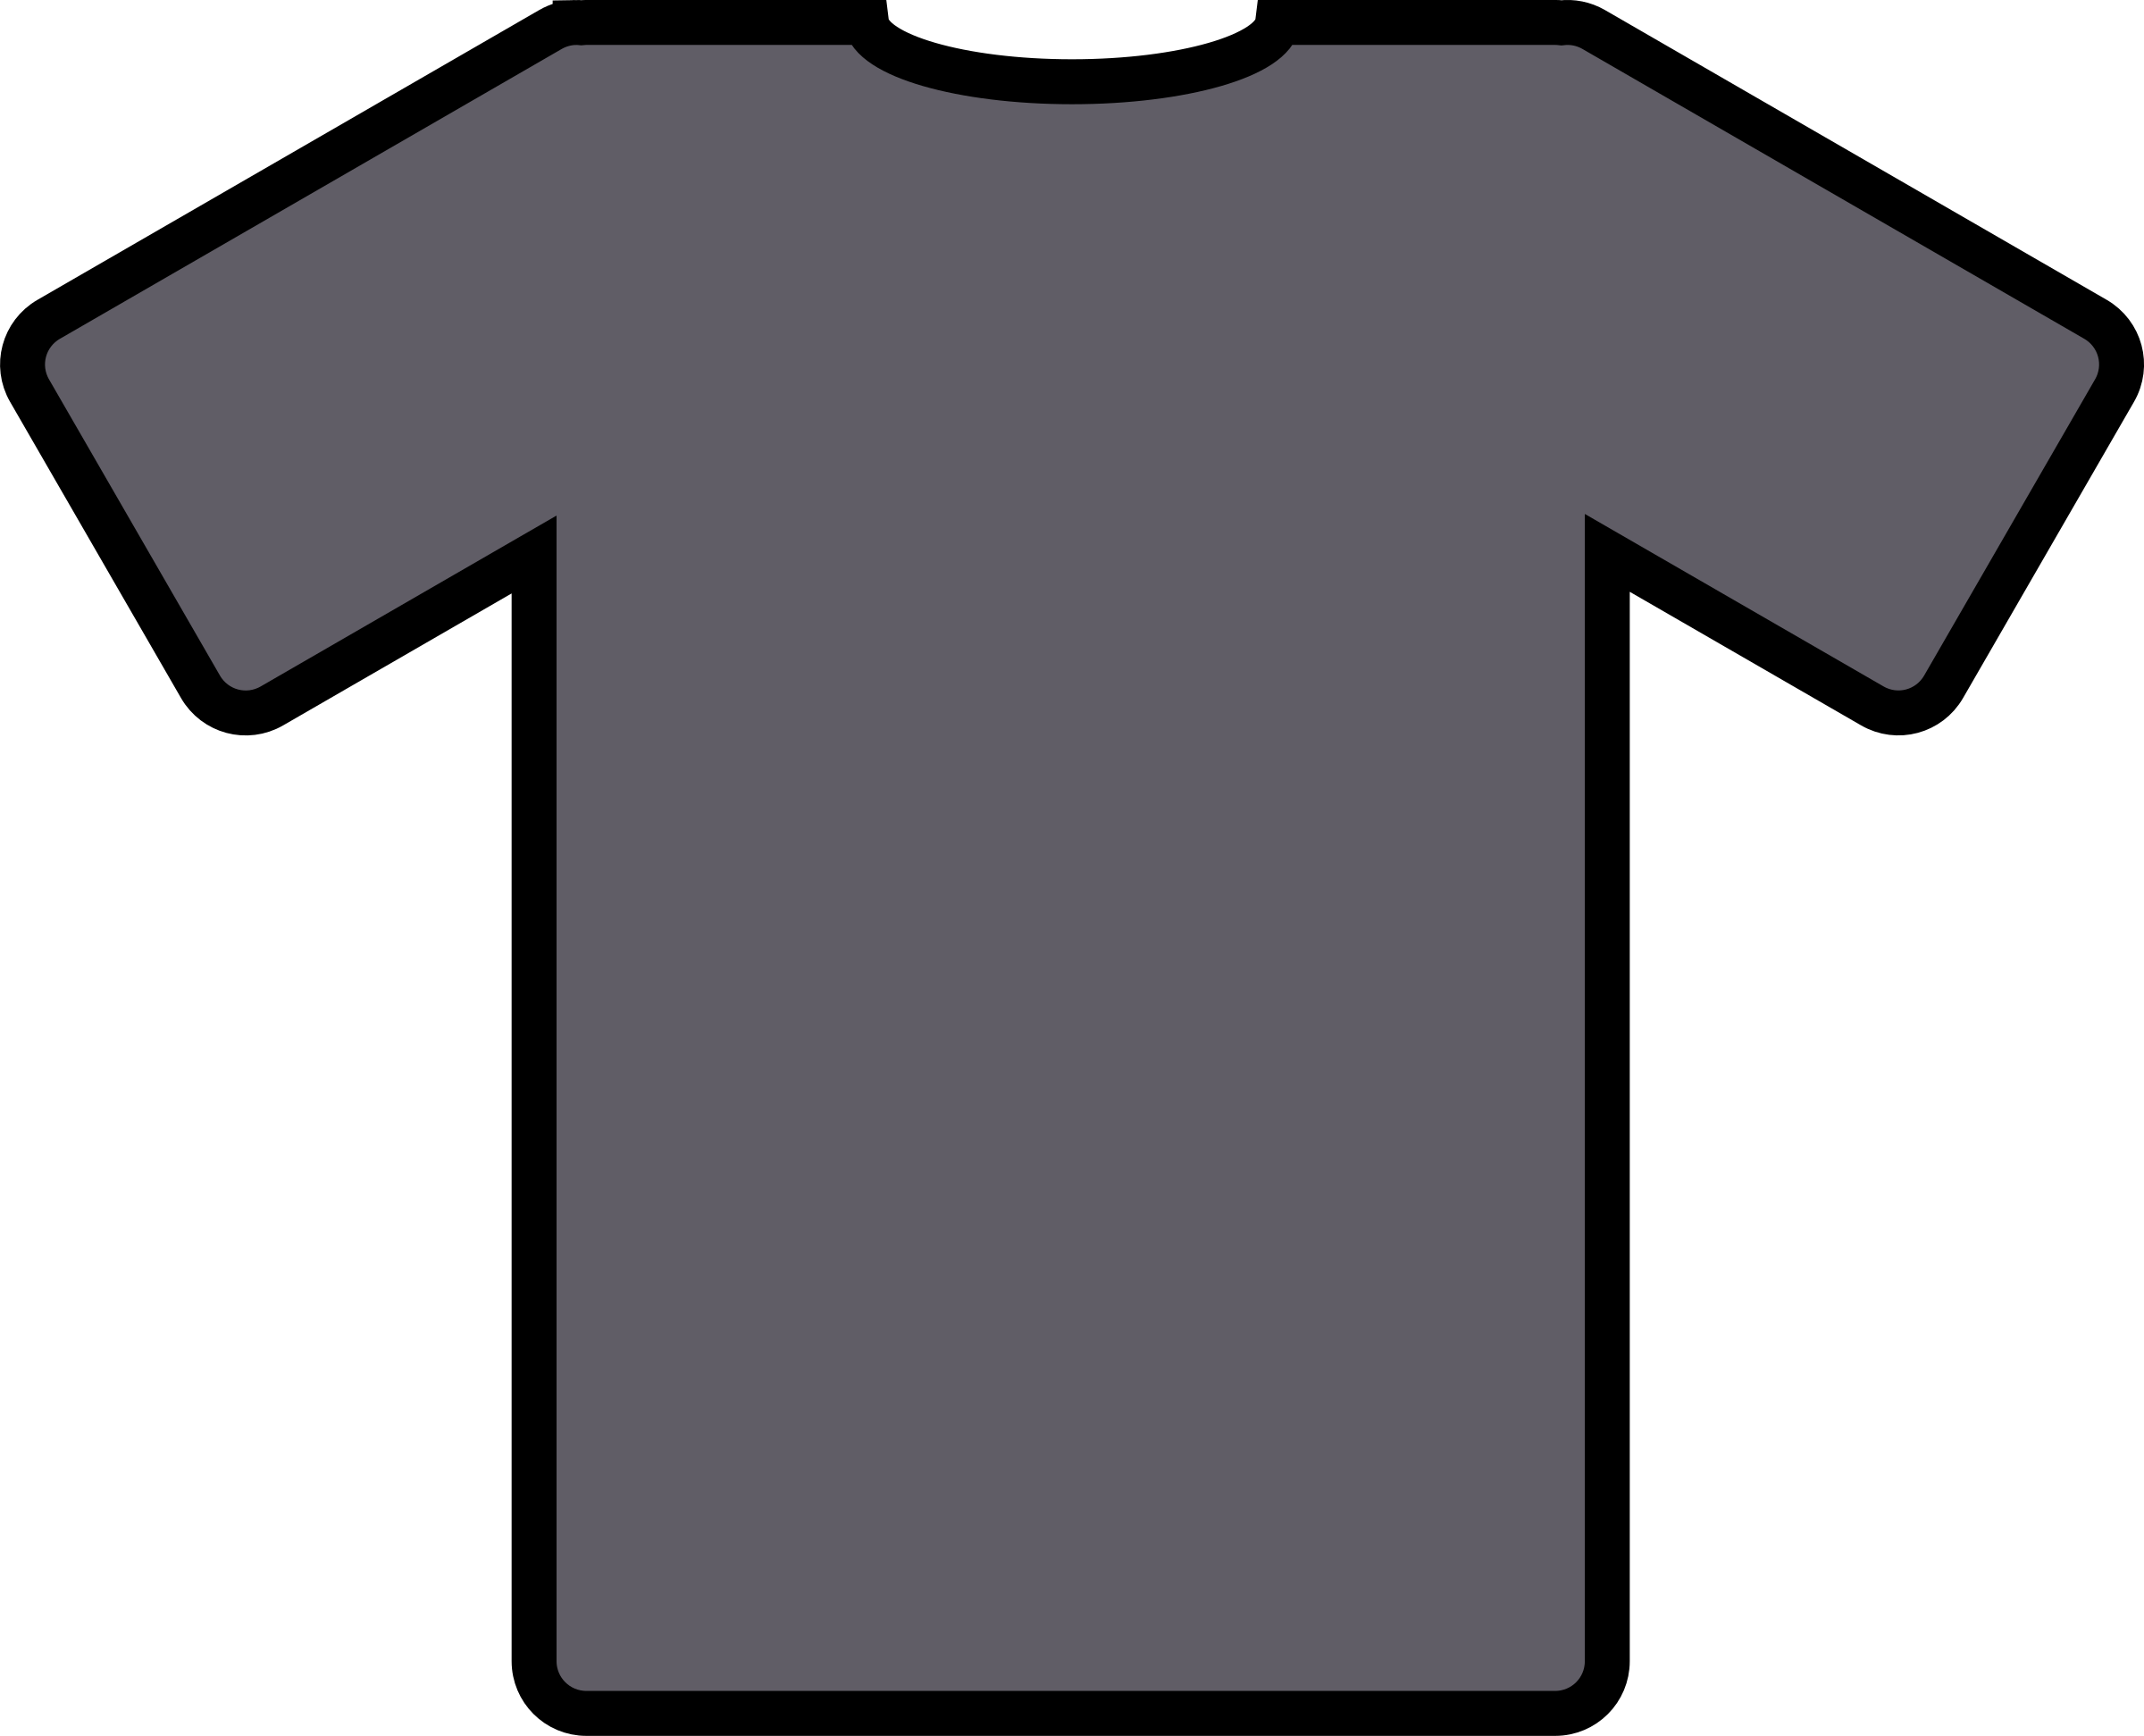 grey t-shirt by ryanlerch